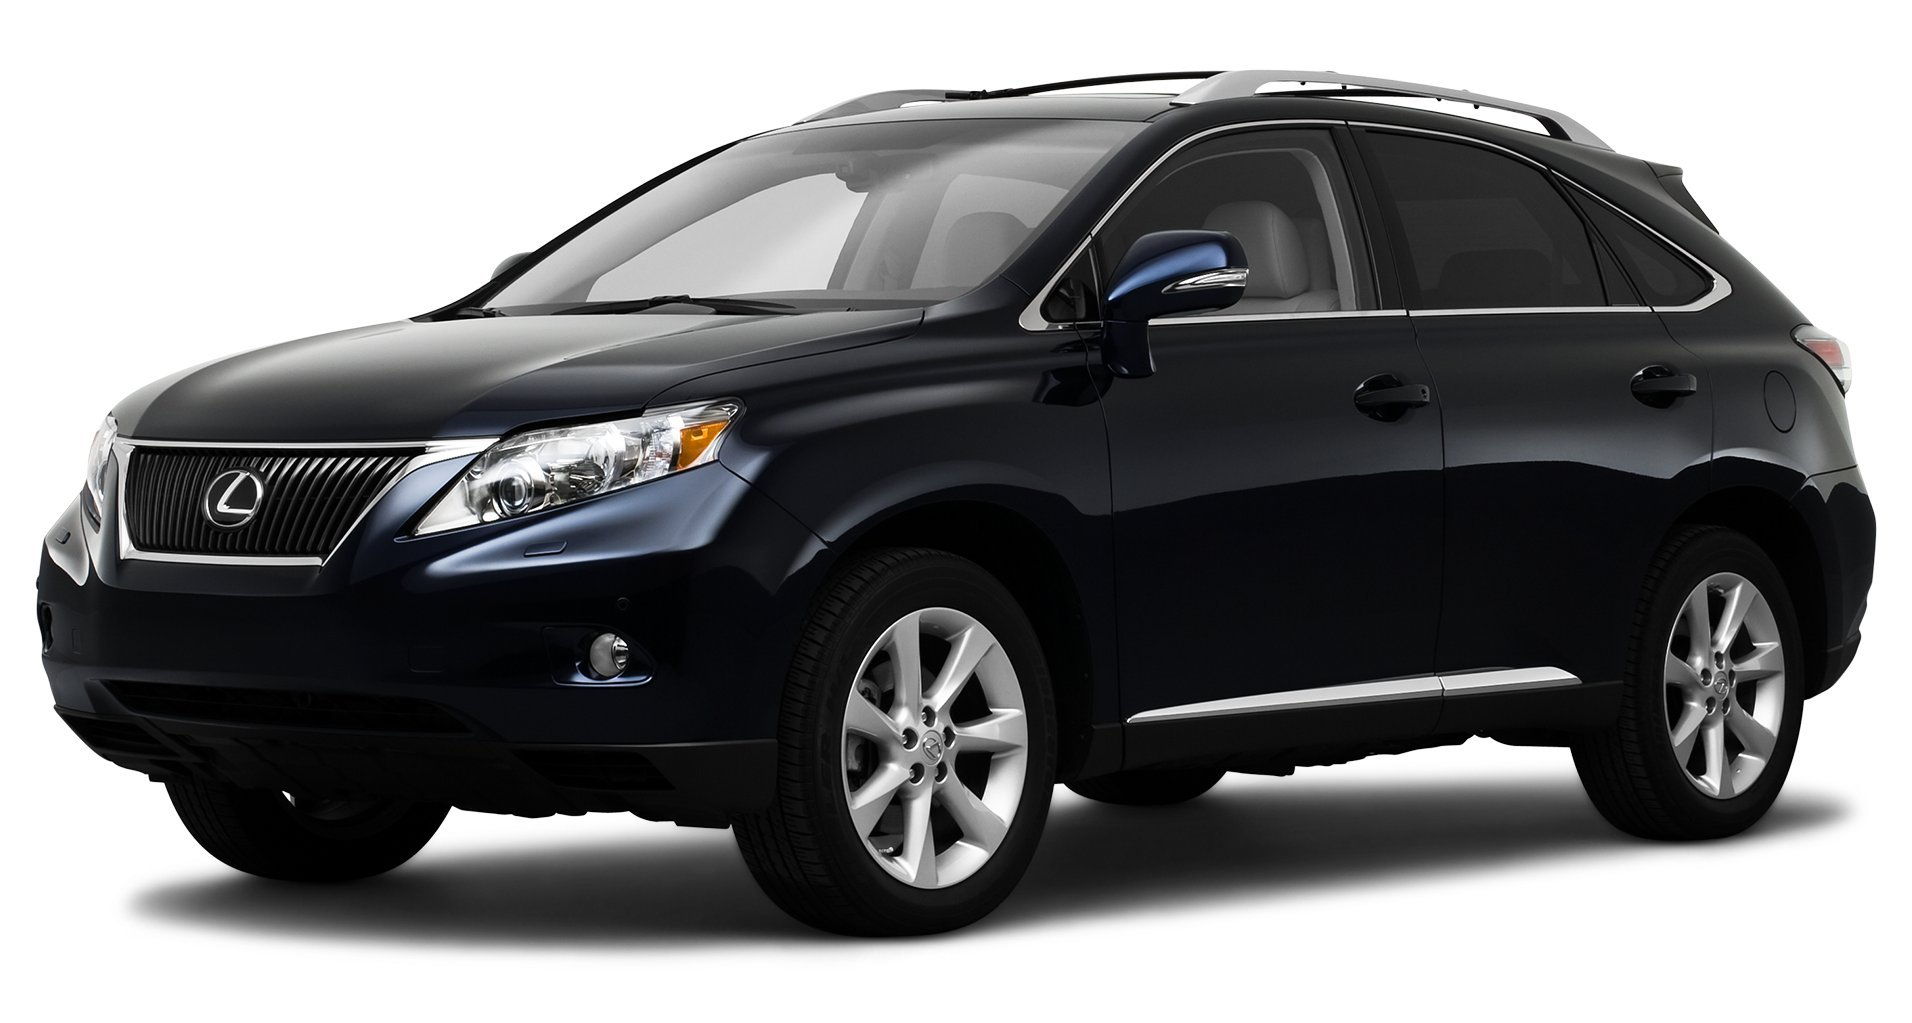 2010 lexus rx350 reviews images and specs. Black Bedroom Furniture Sets. Home Design Ideas